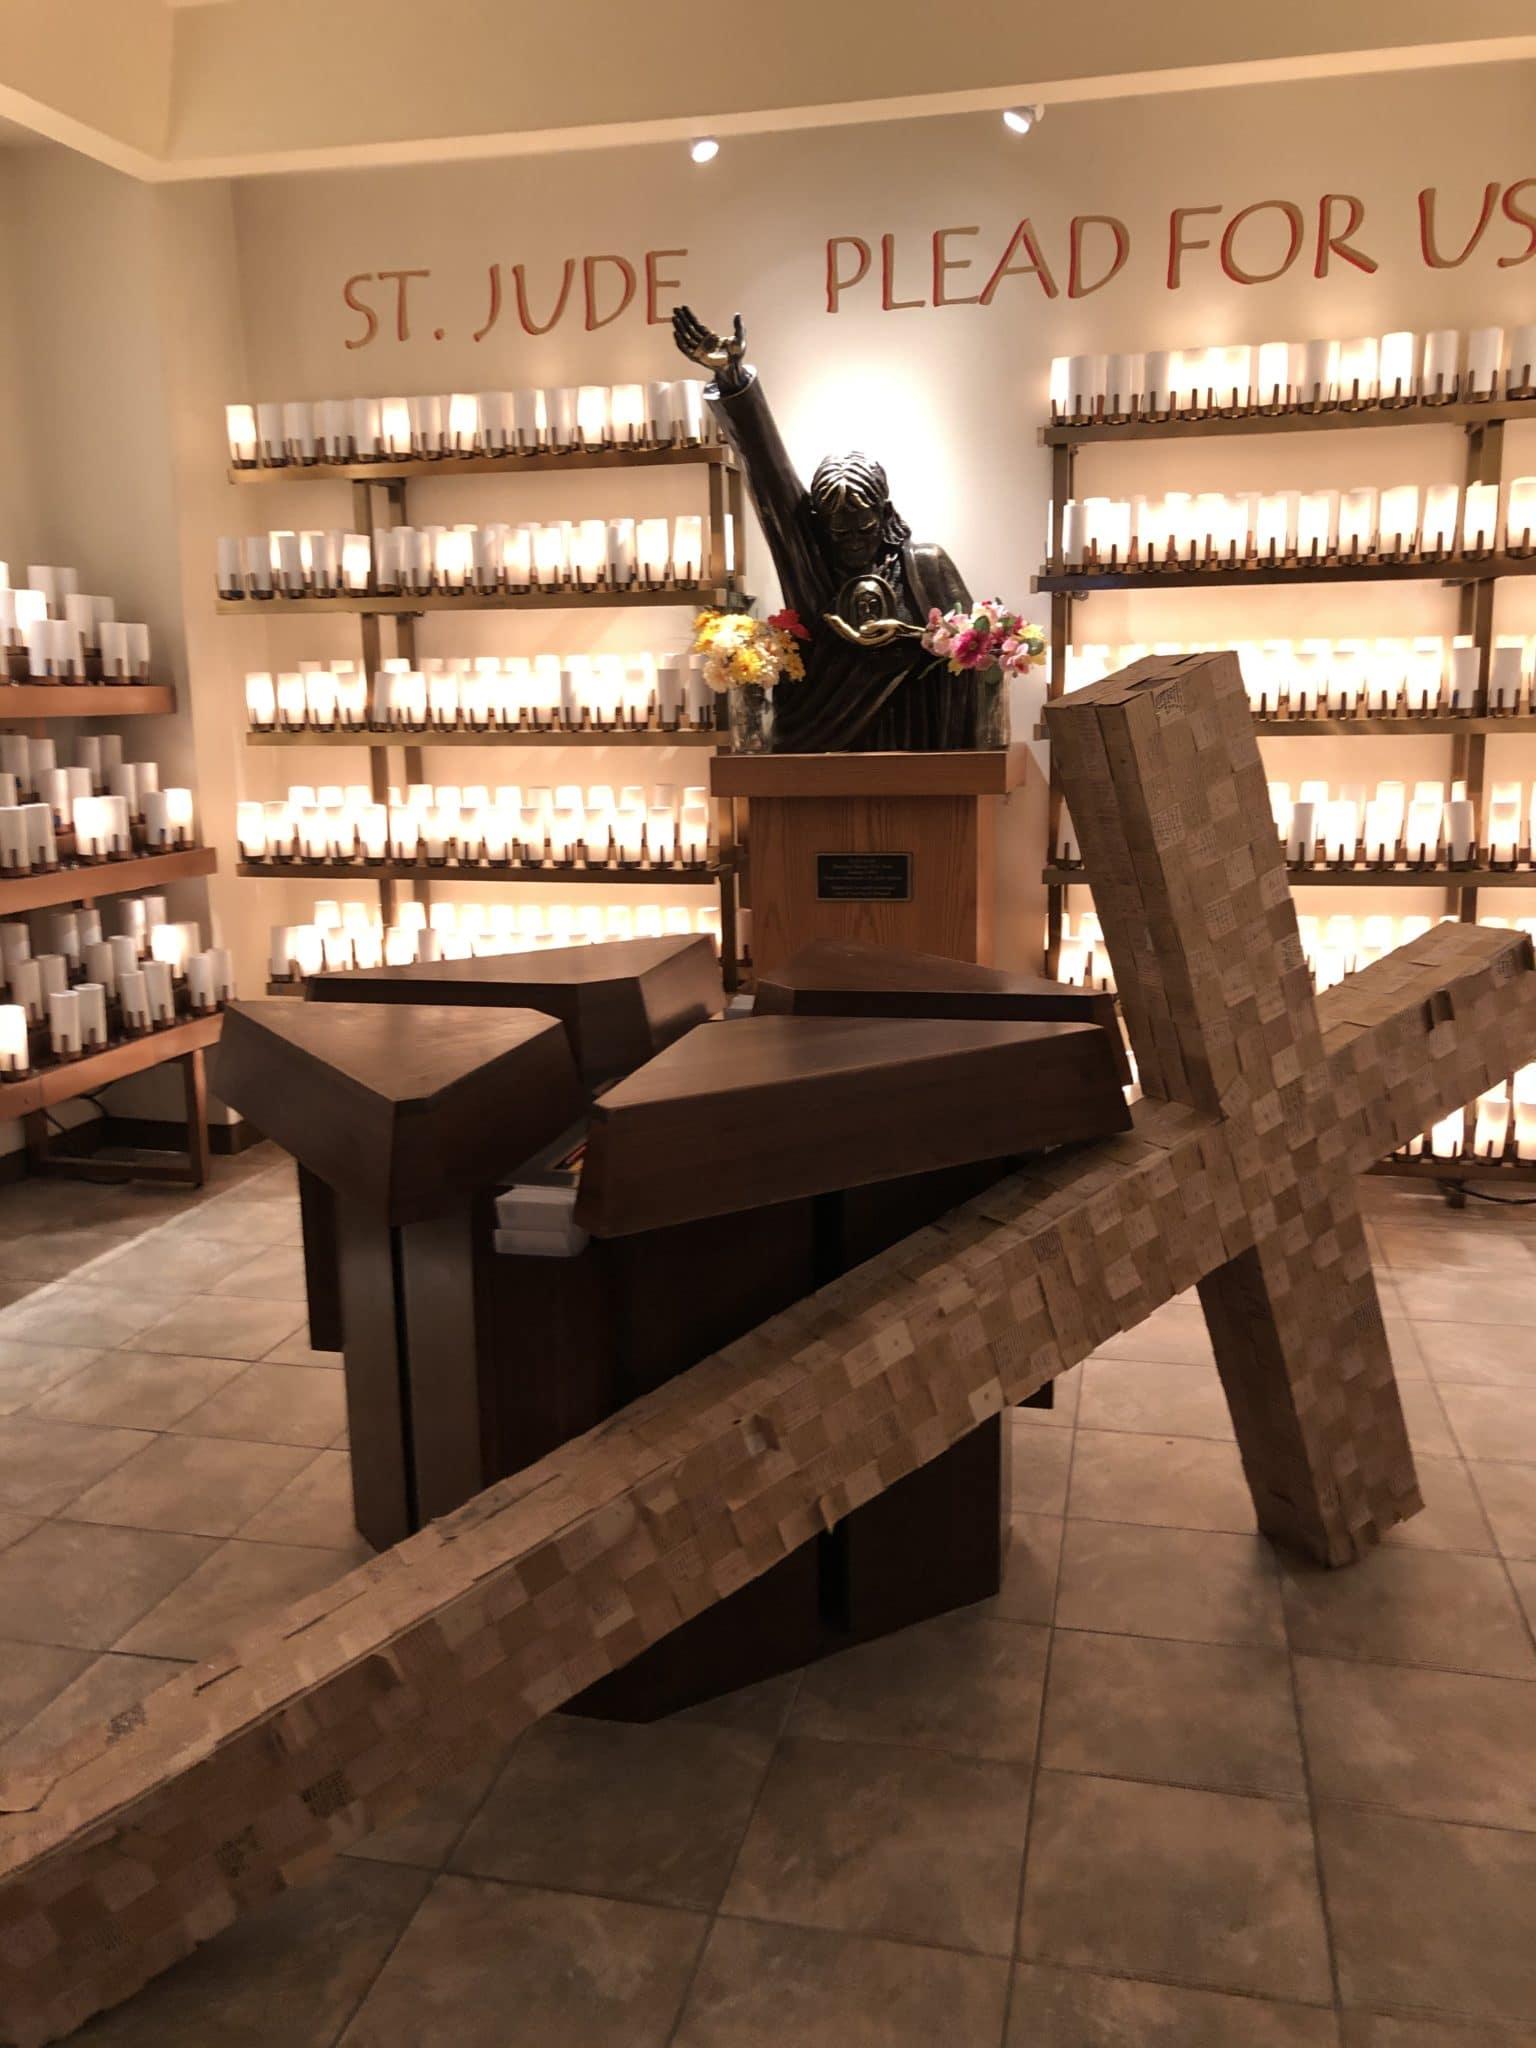 Celebrate Holy Week with the National Shrine of St. Jude